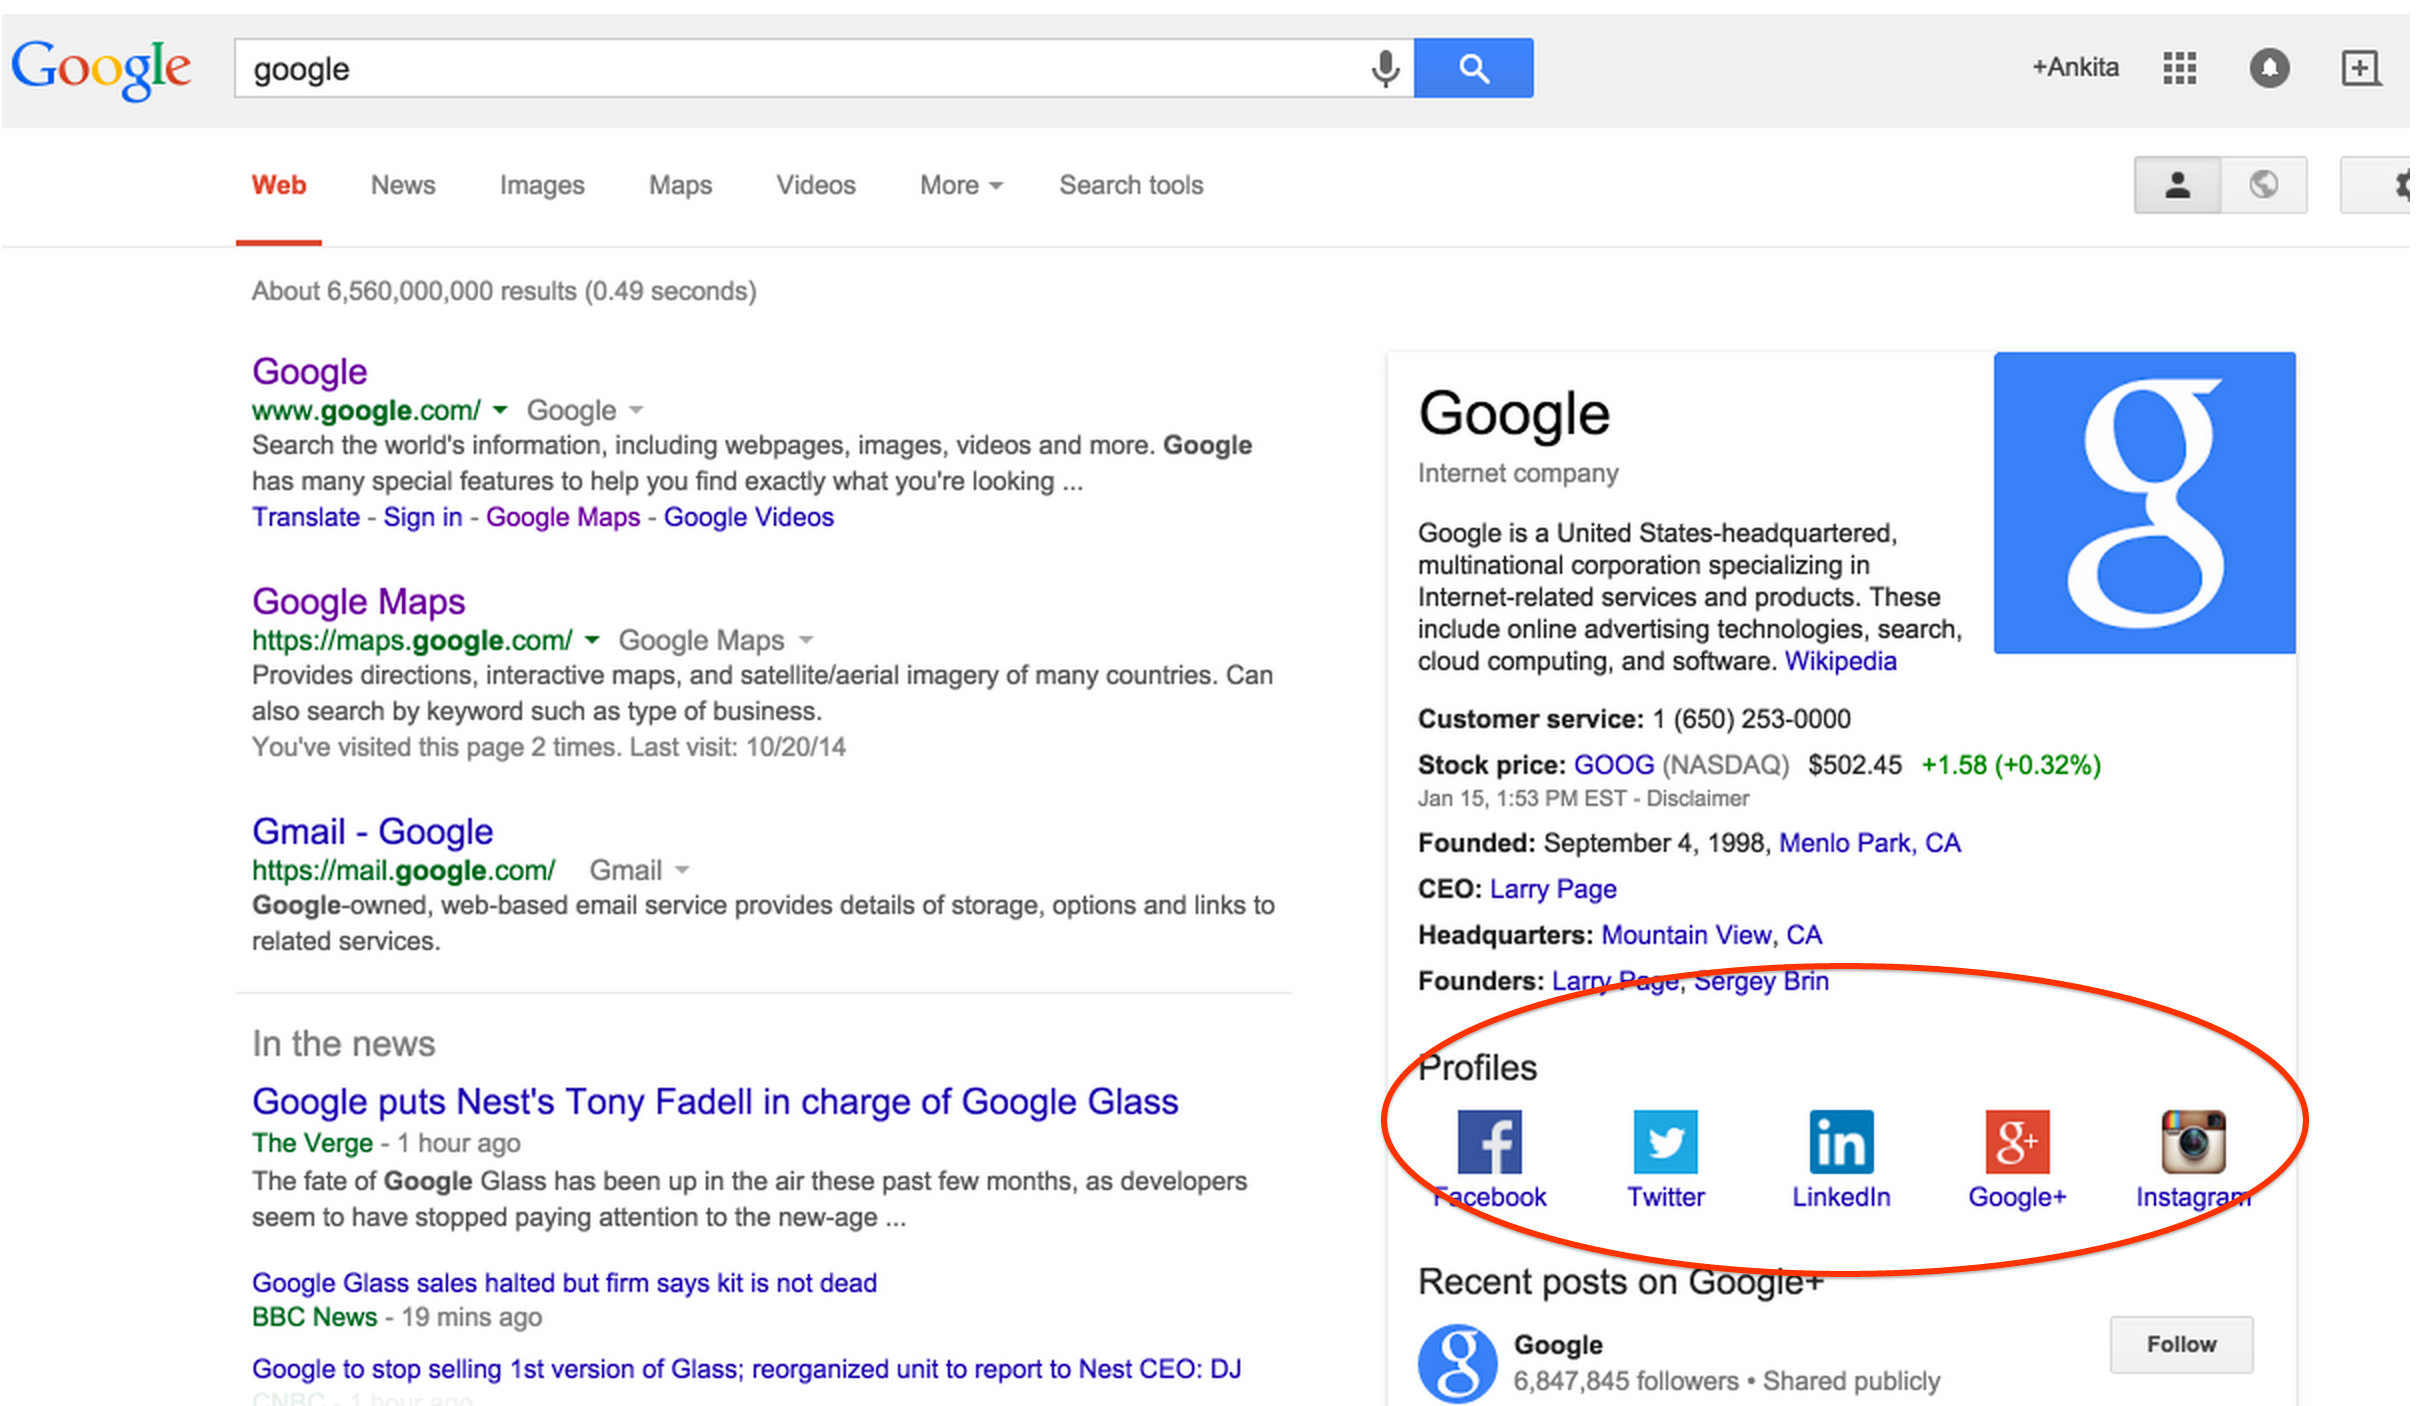 Google Adds Social Profile Links in Knowledge Graph